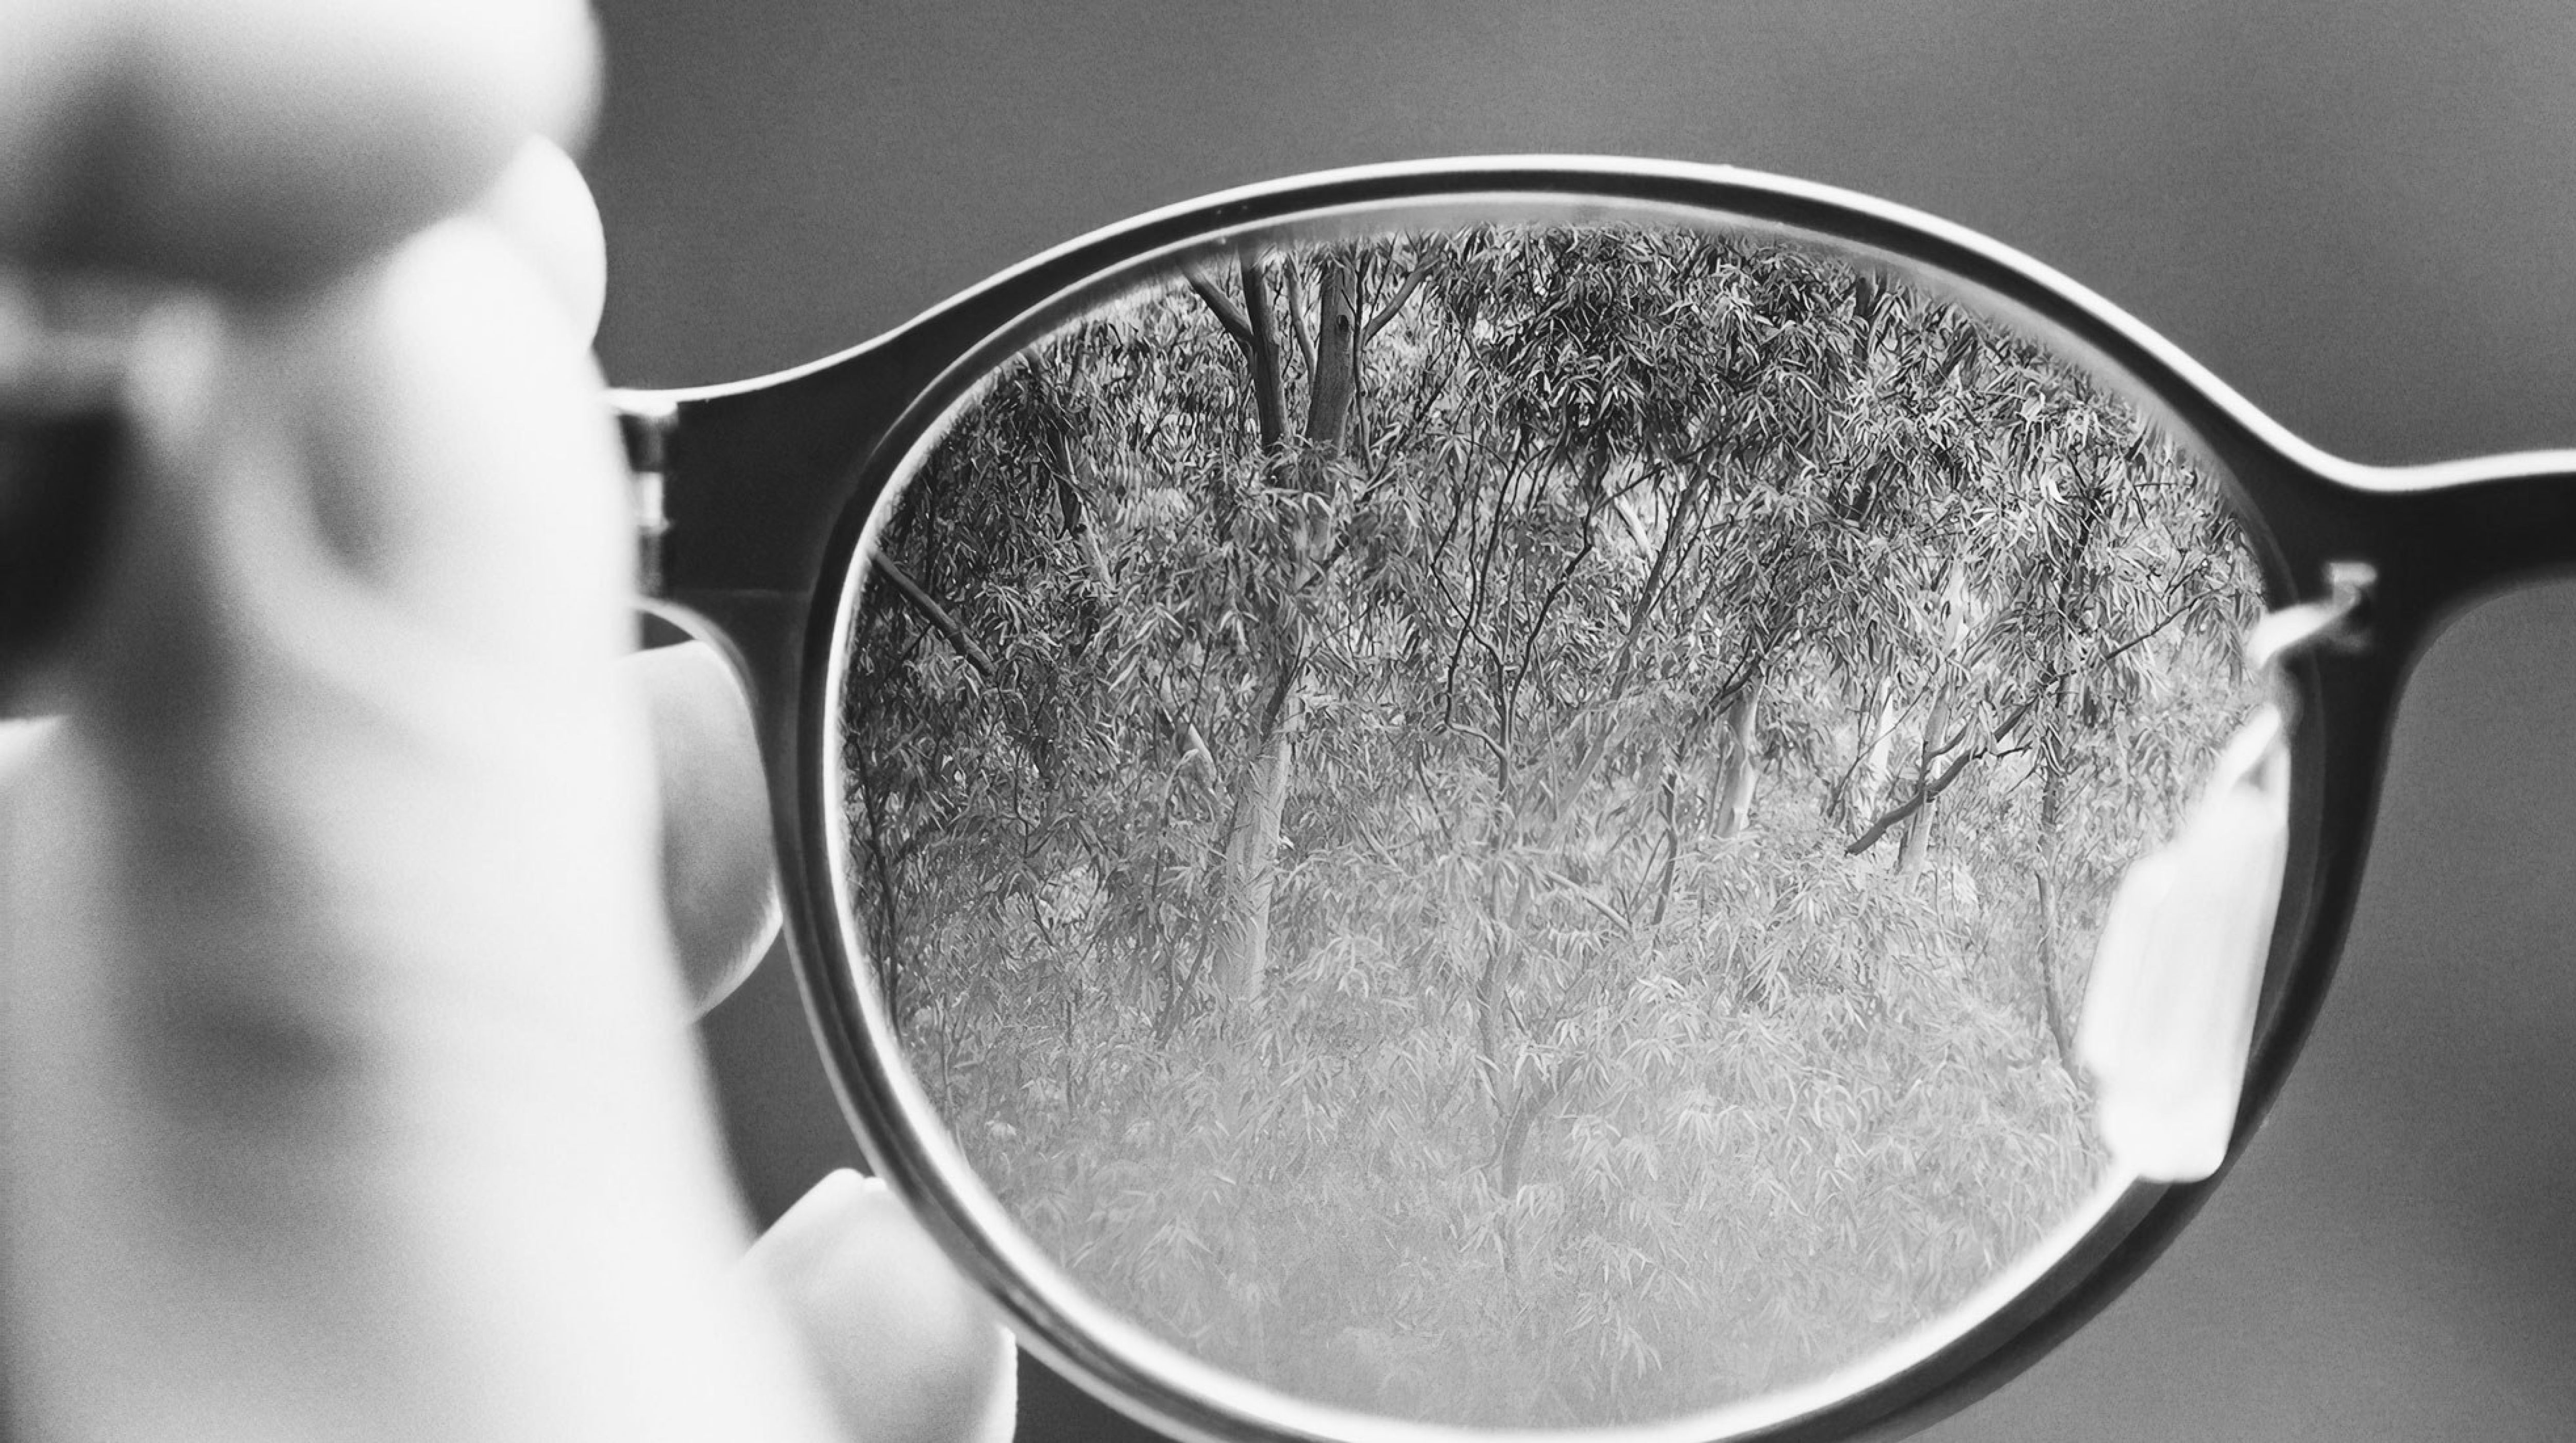 Black and white image of eye glasses focusing on trees